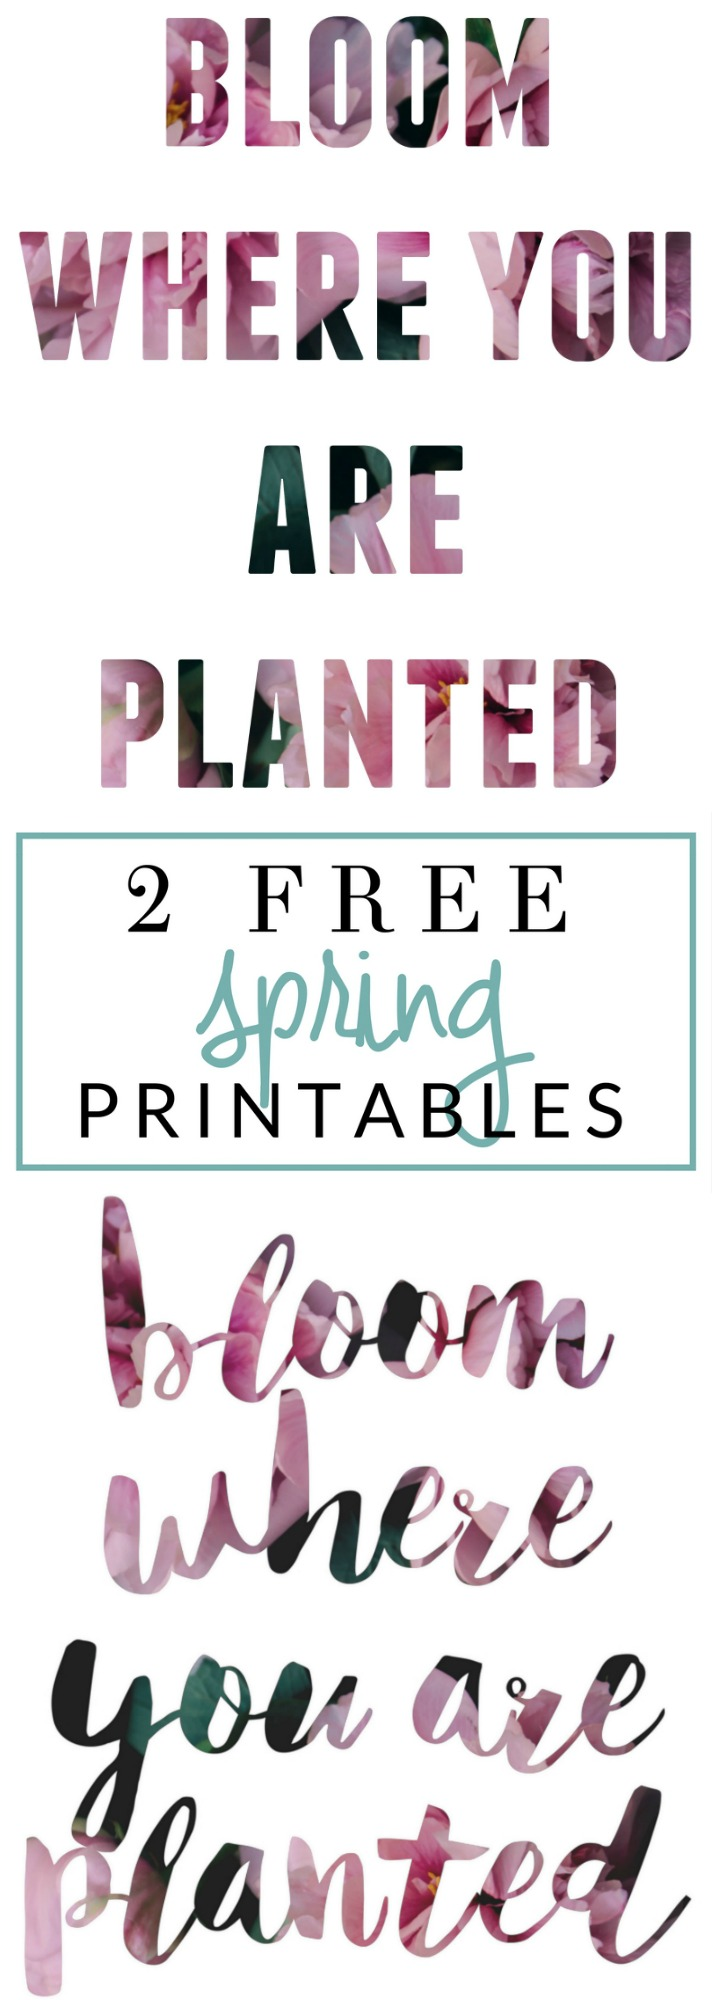 Bloom Where You Are Planted - 2 free printables and a PicMonkey tutorial